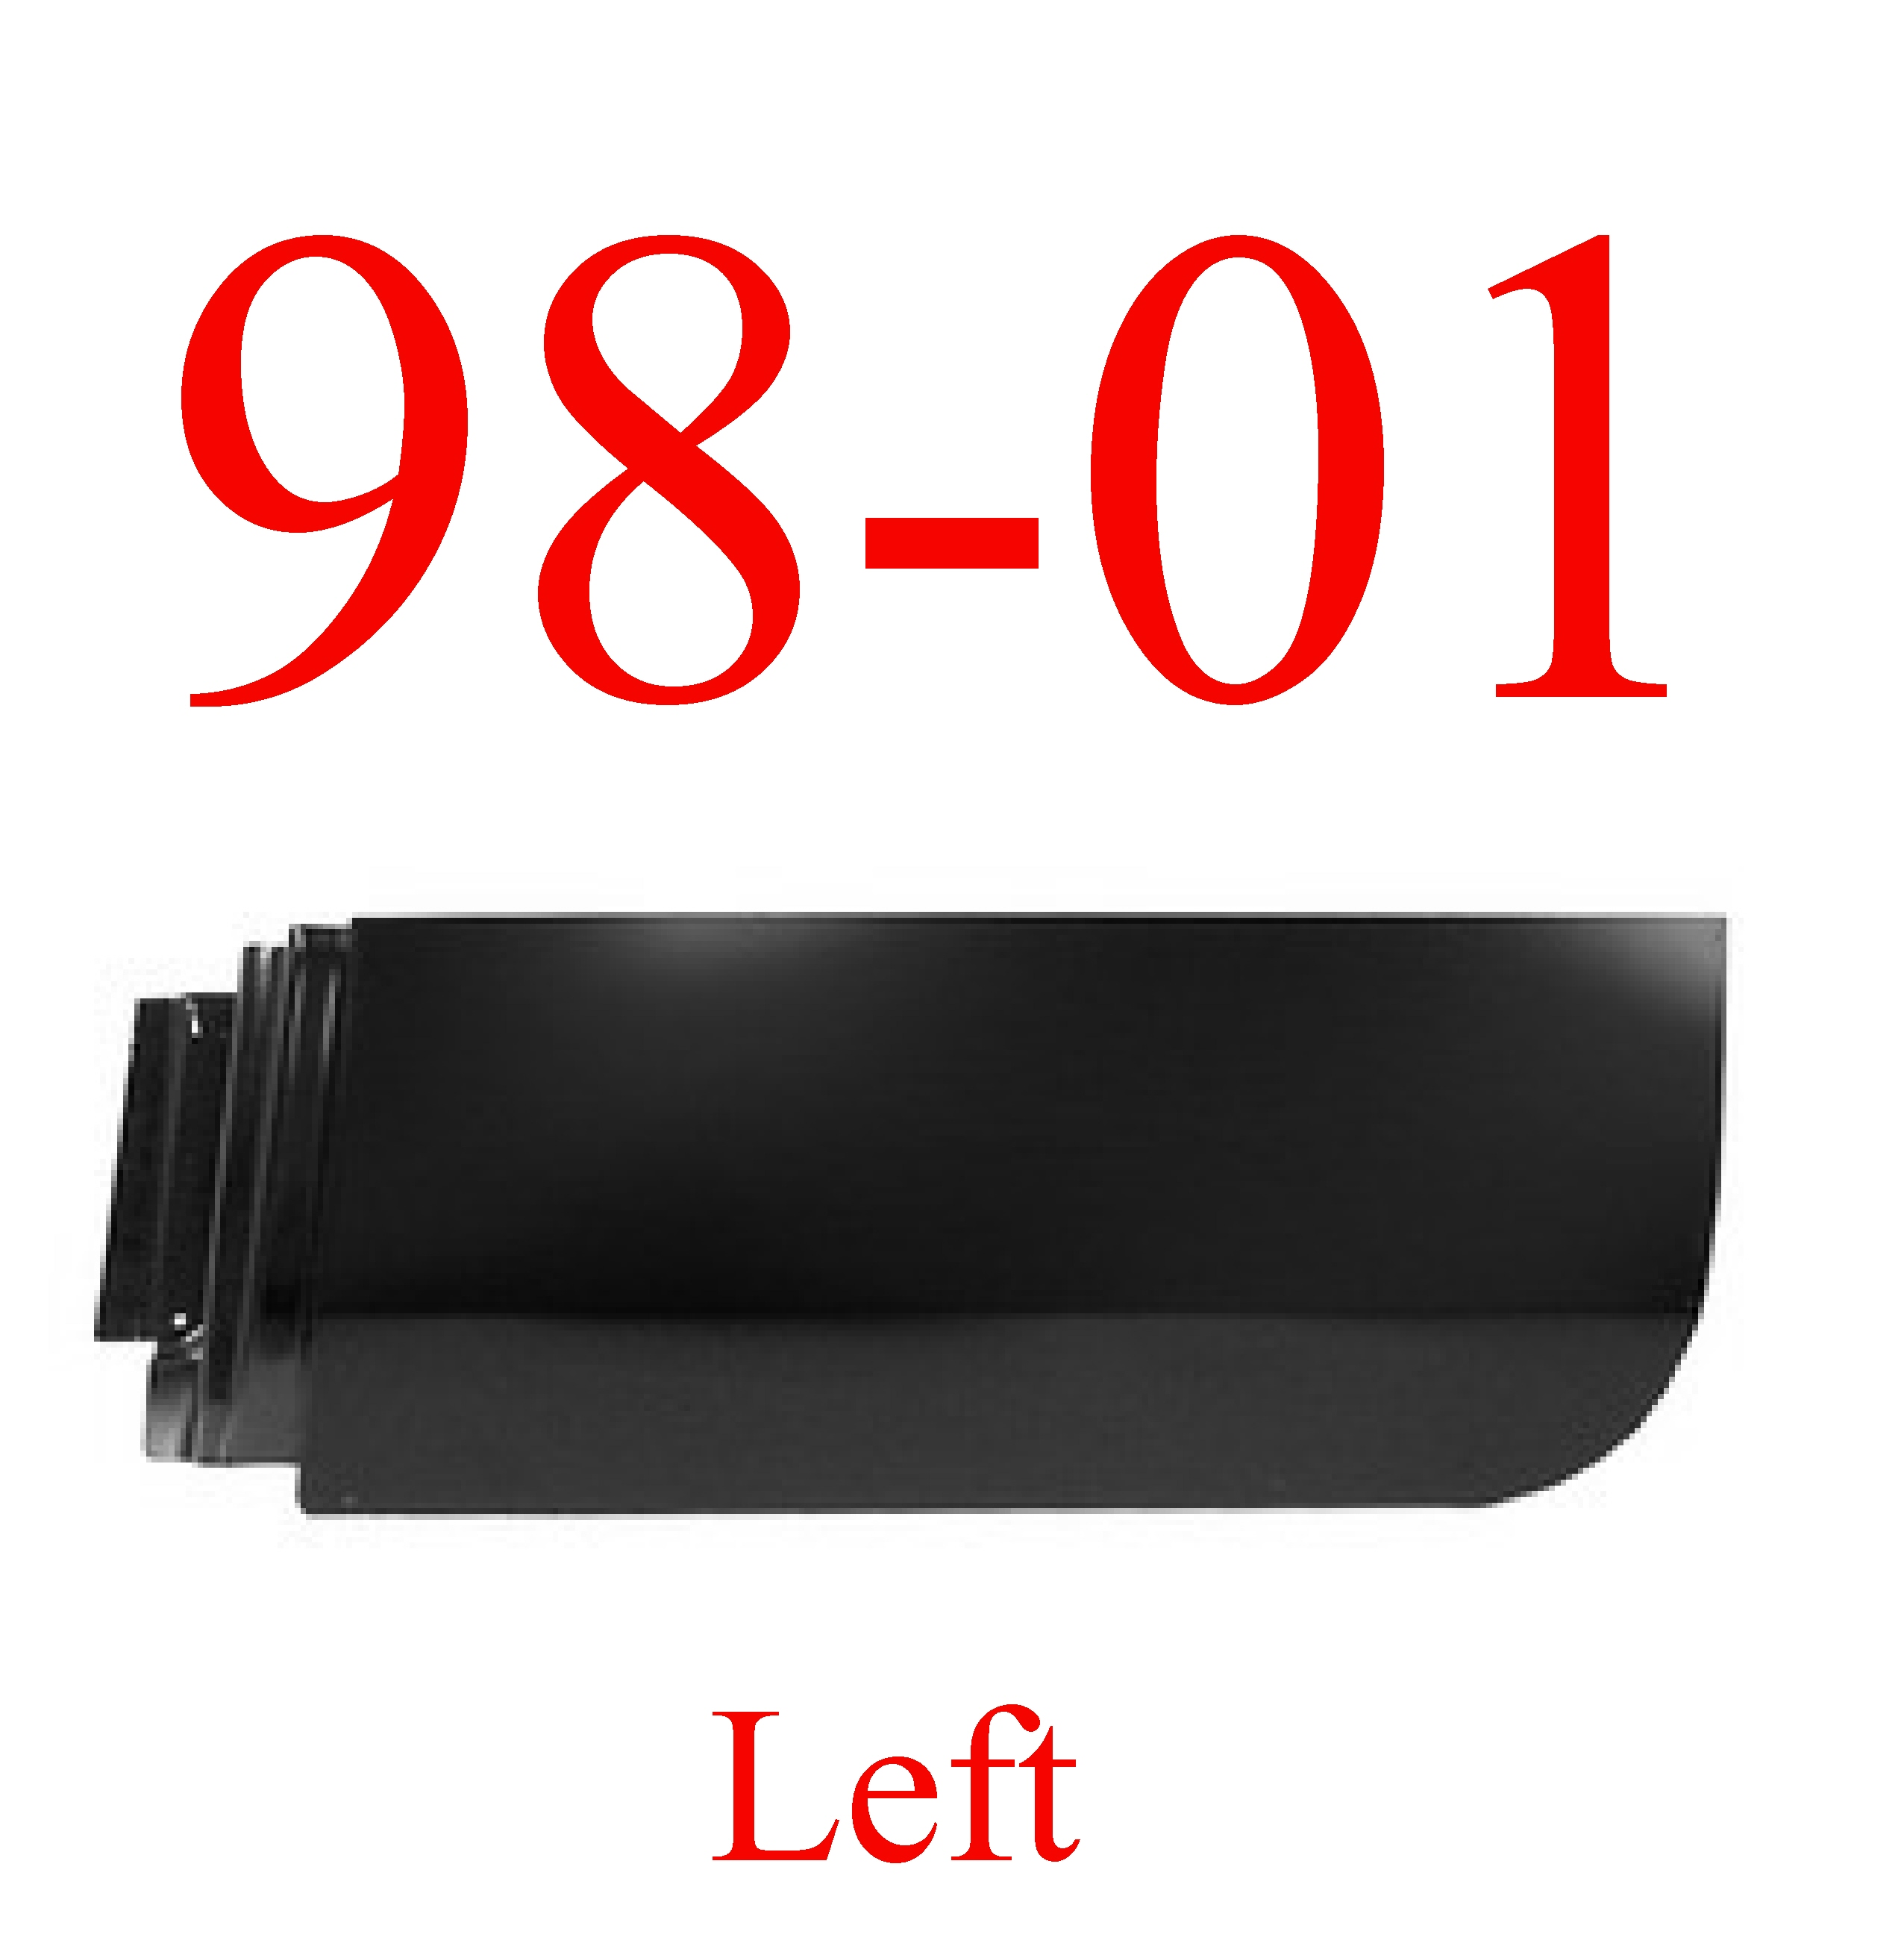 98-01 Dodge Left Rear Quad Cab Door Skin